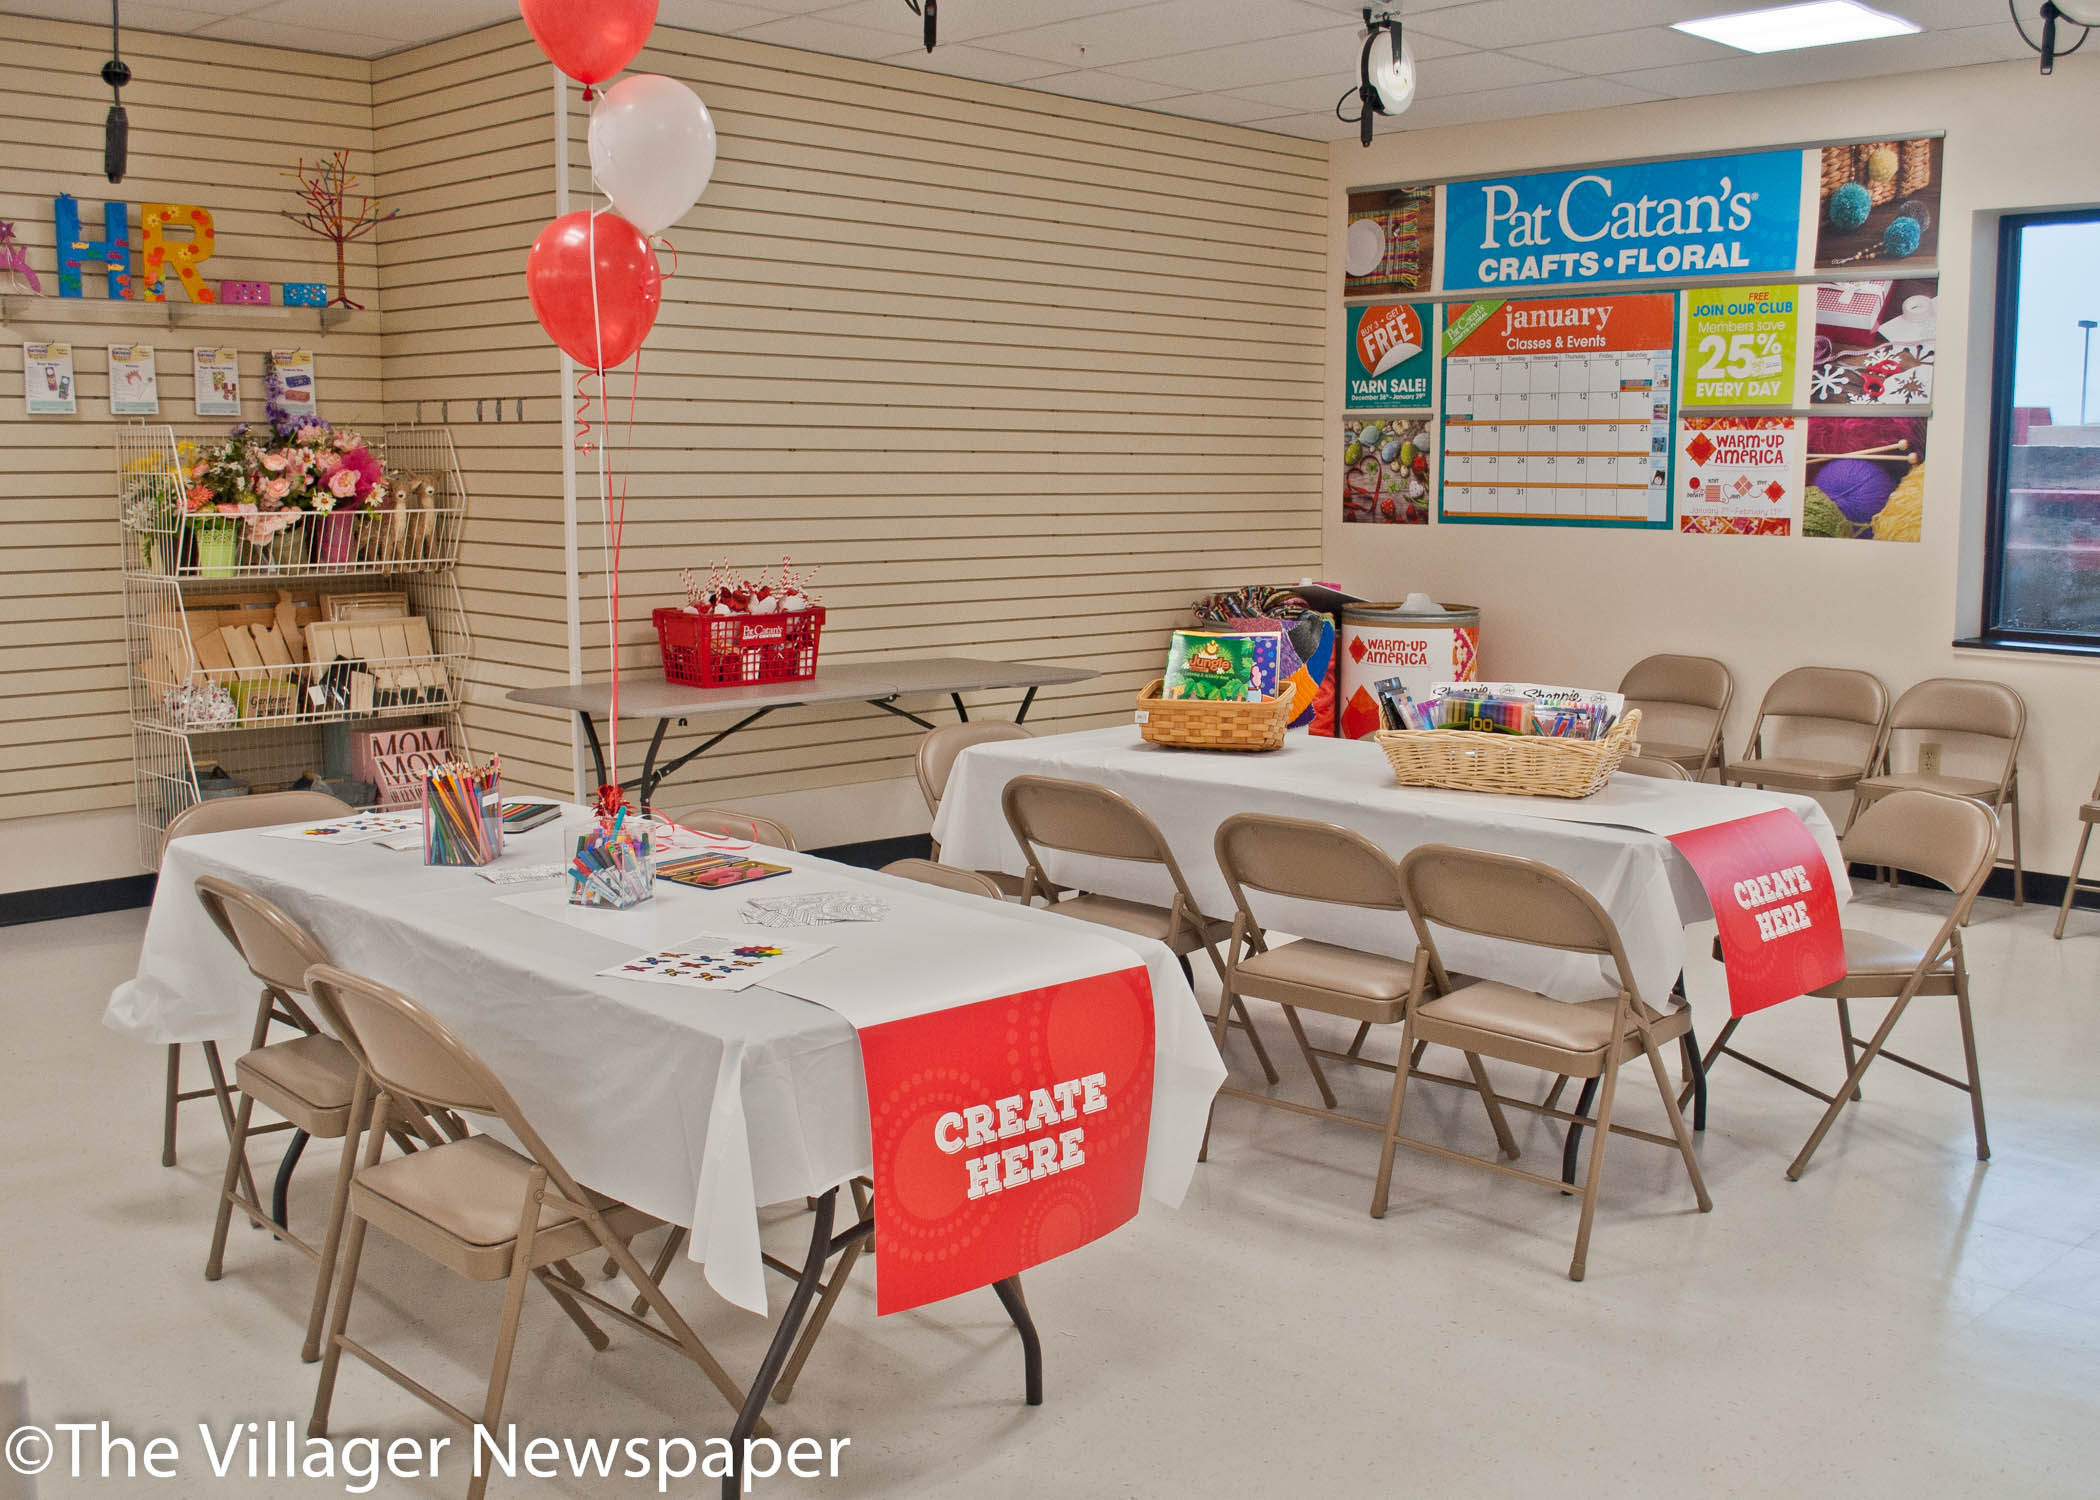 photo relating to Pat Catans Coupon Printable titled Pat Catans Opens Contemporary Westlake Desired destination - The Villager